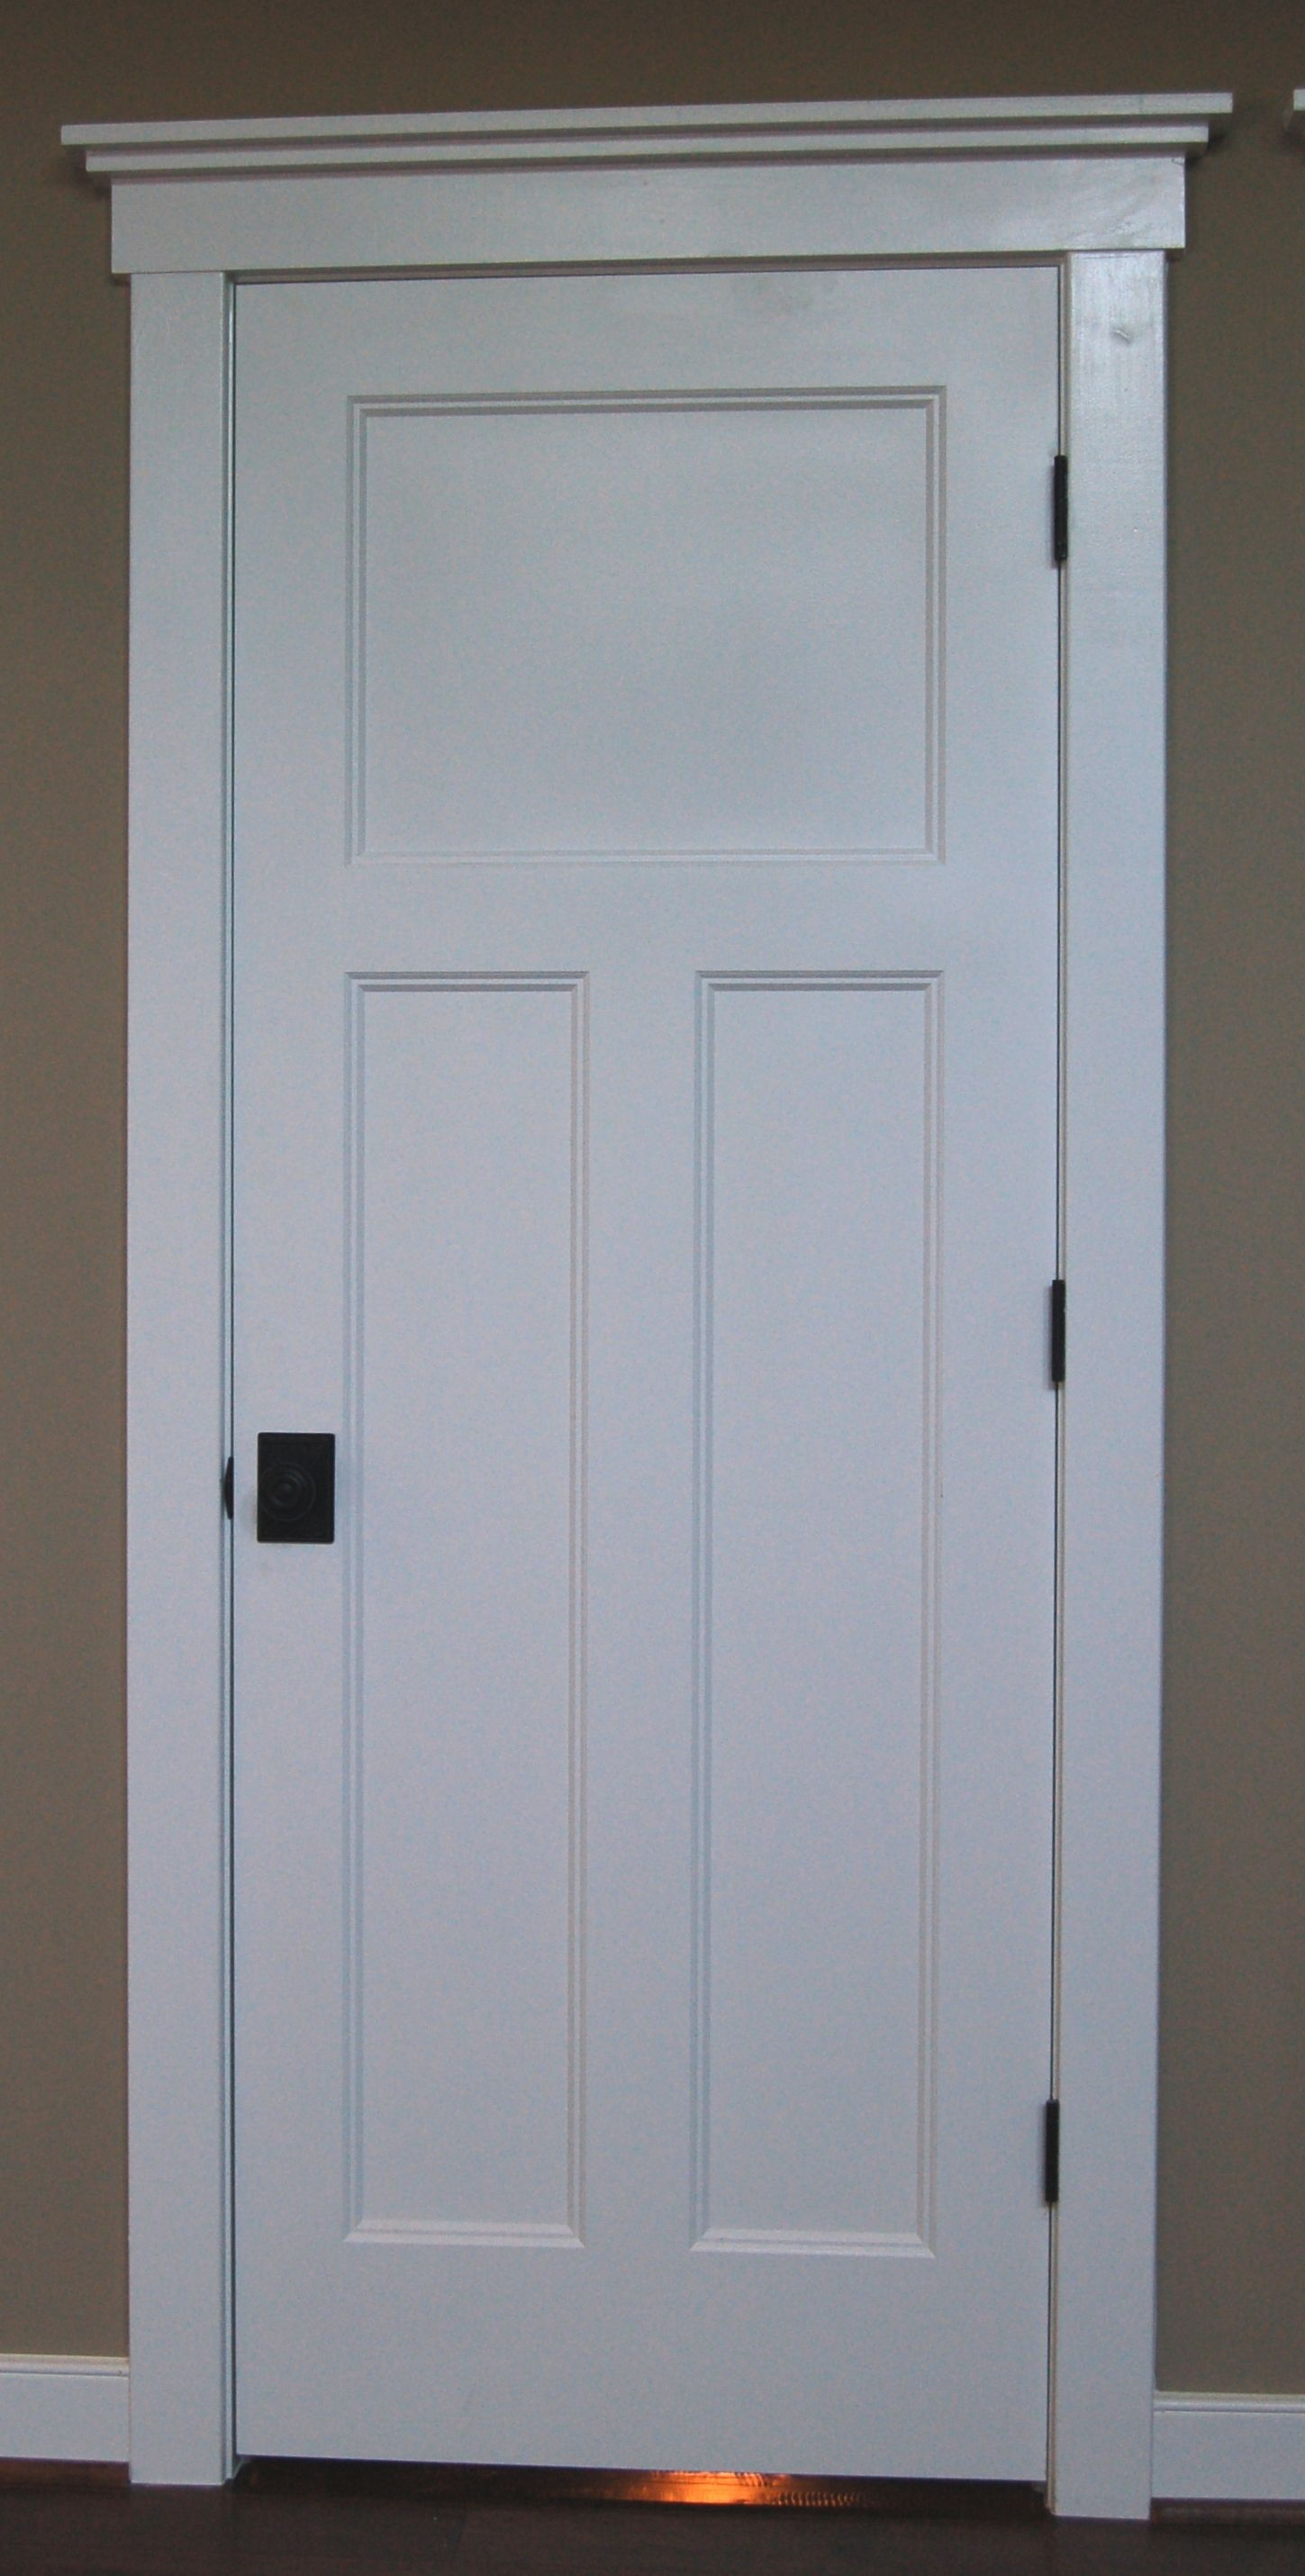 Marvelous Interior Door Trim Styles 1 Craftsman Style Interior Doors Build It Pinterest